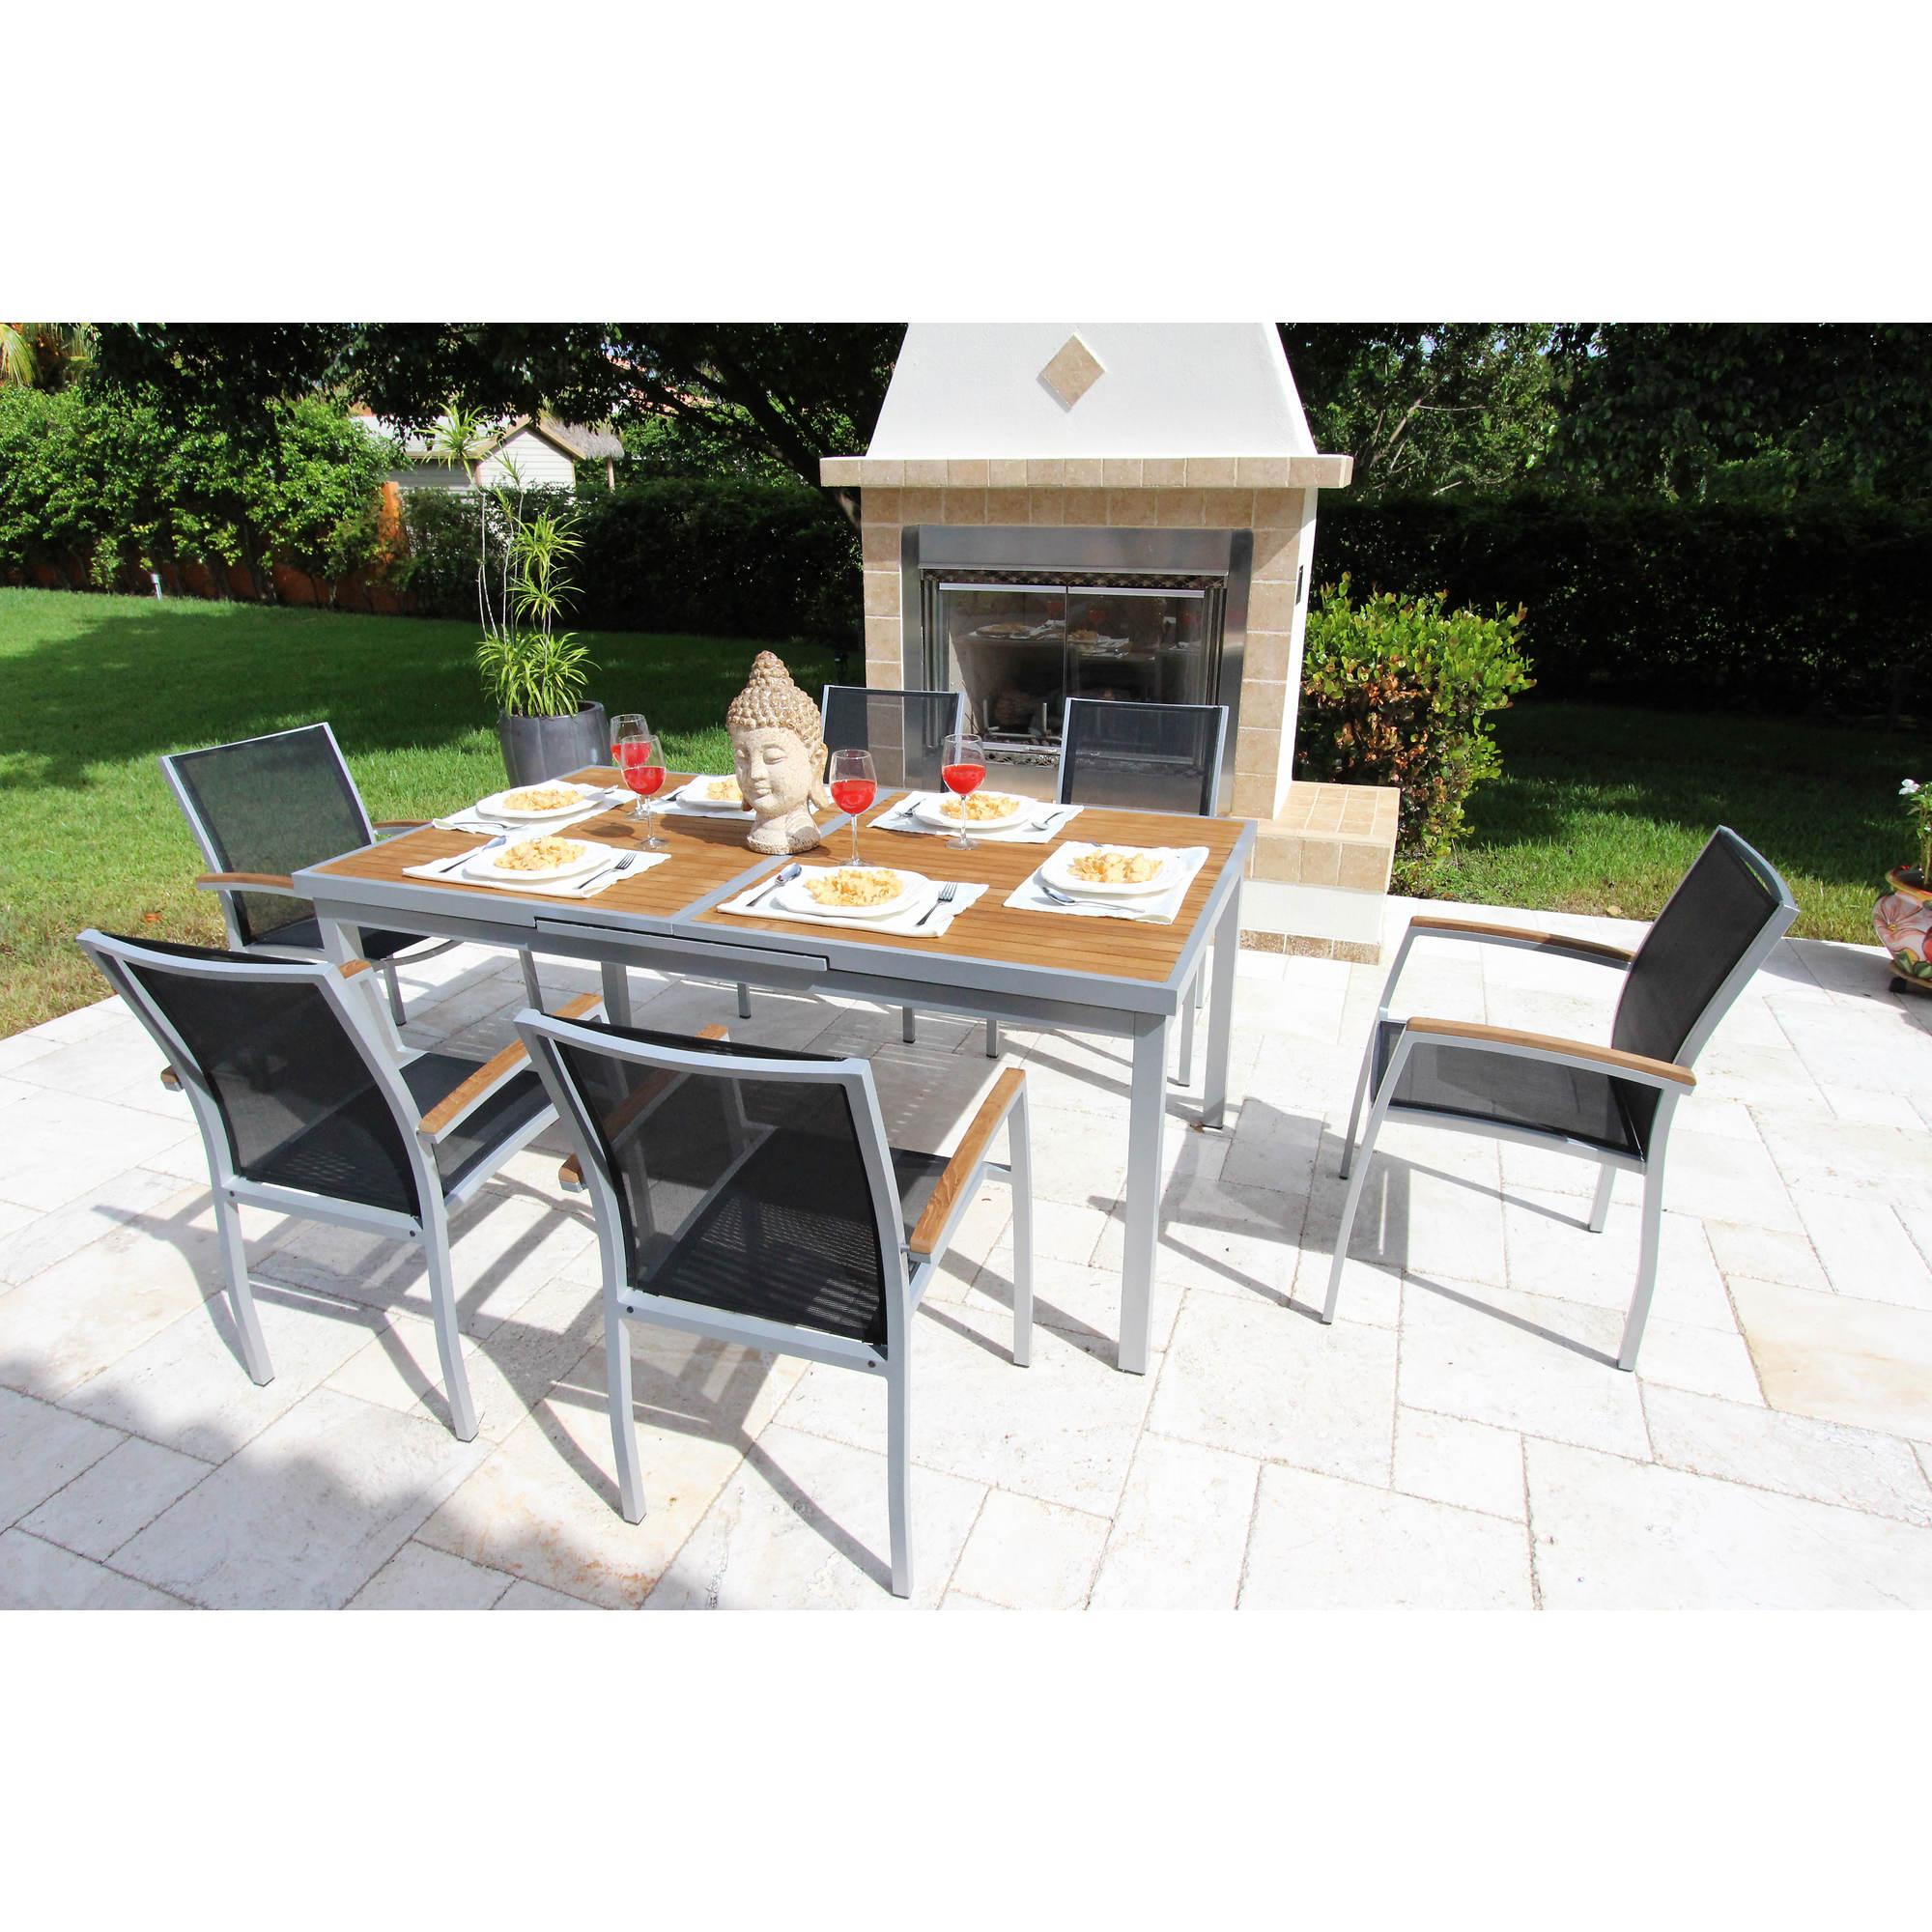 Bellini Home And Gardens Galliano Castaway 7 Pc Outdoor Dining Set